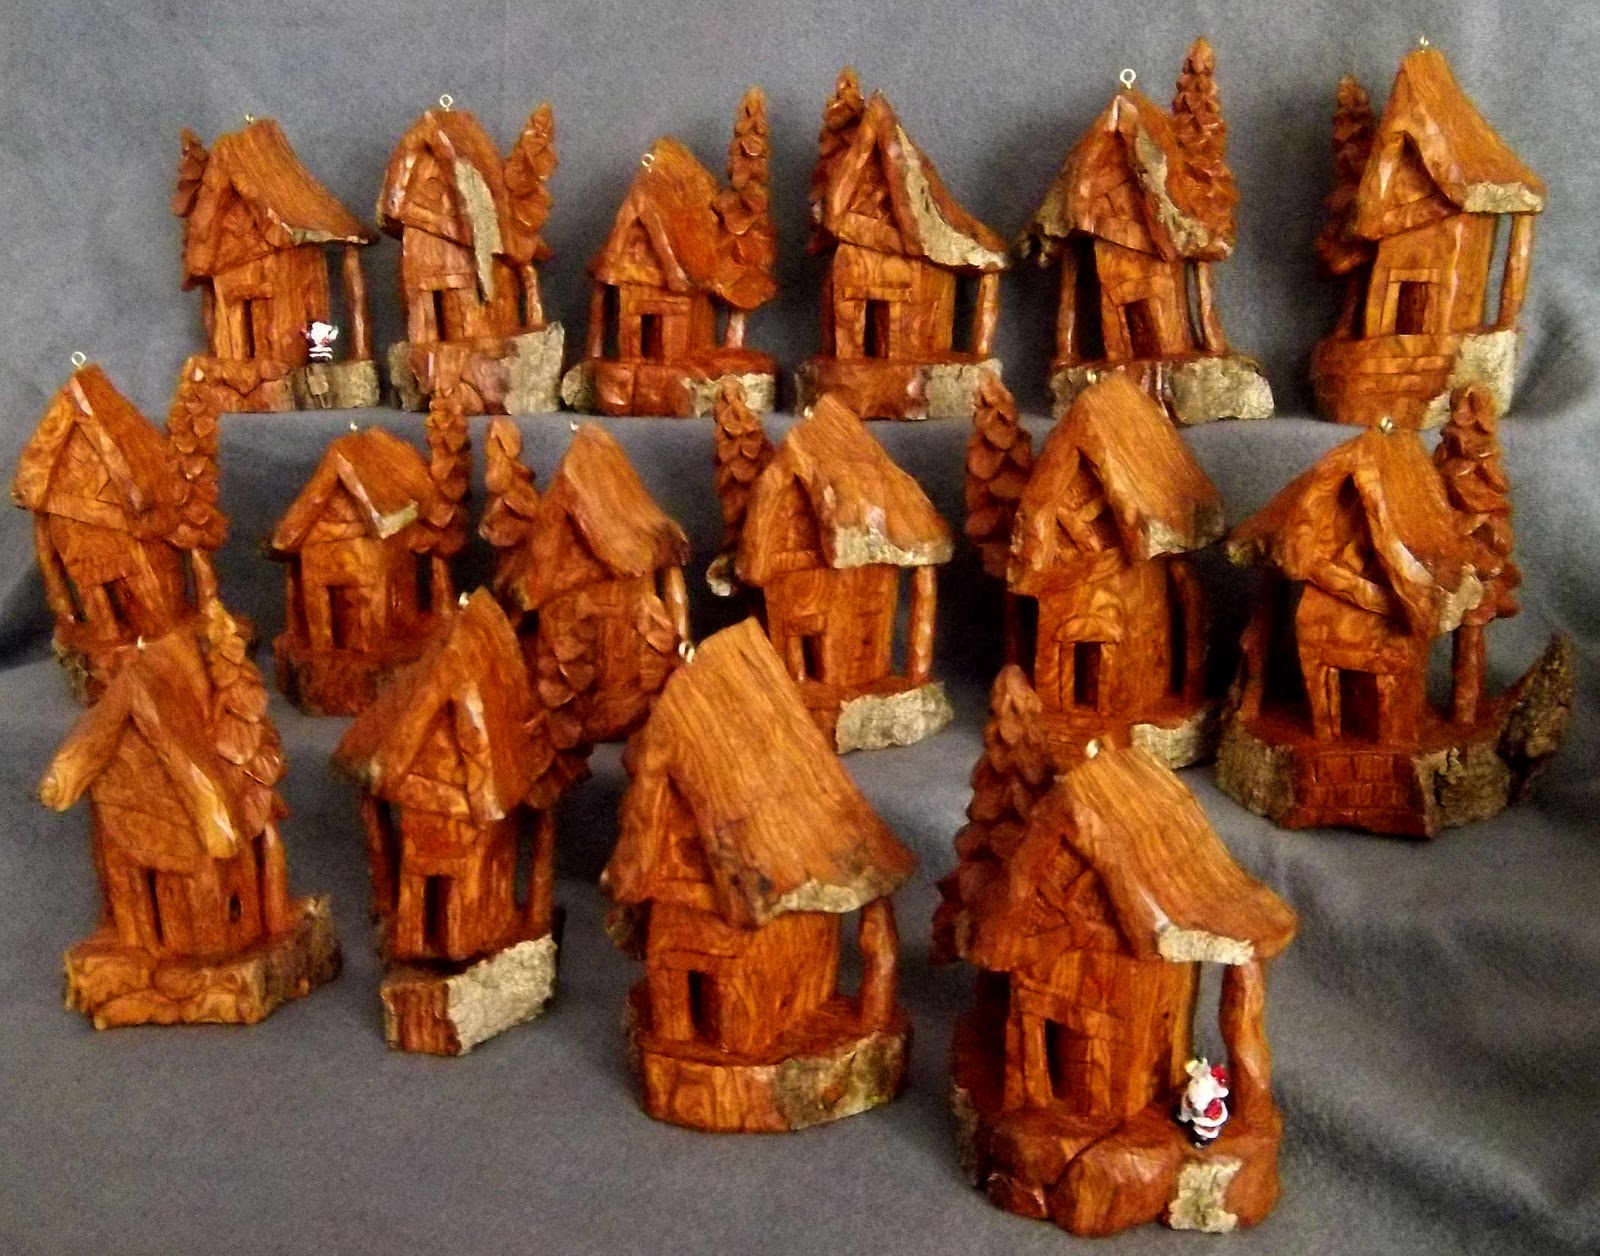 Tree Bark Whimsical Houses Bing Images